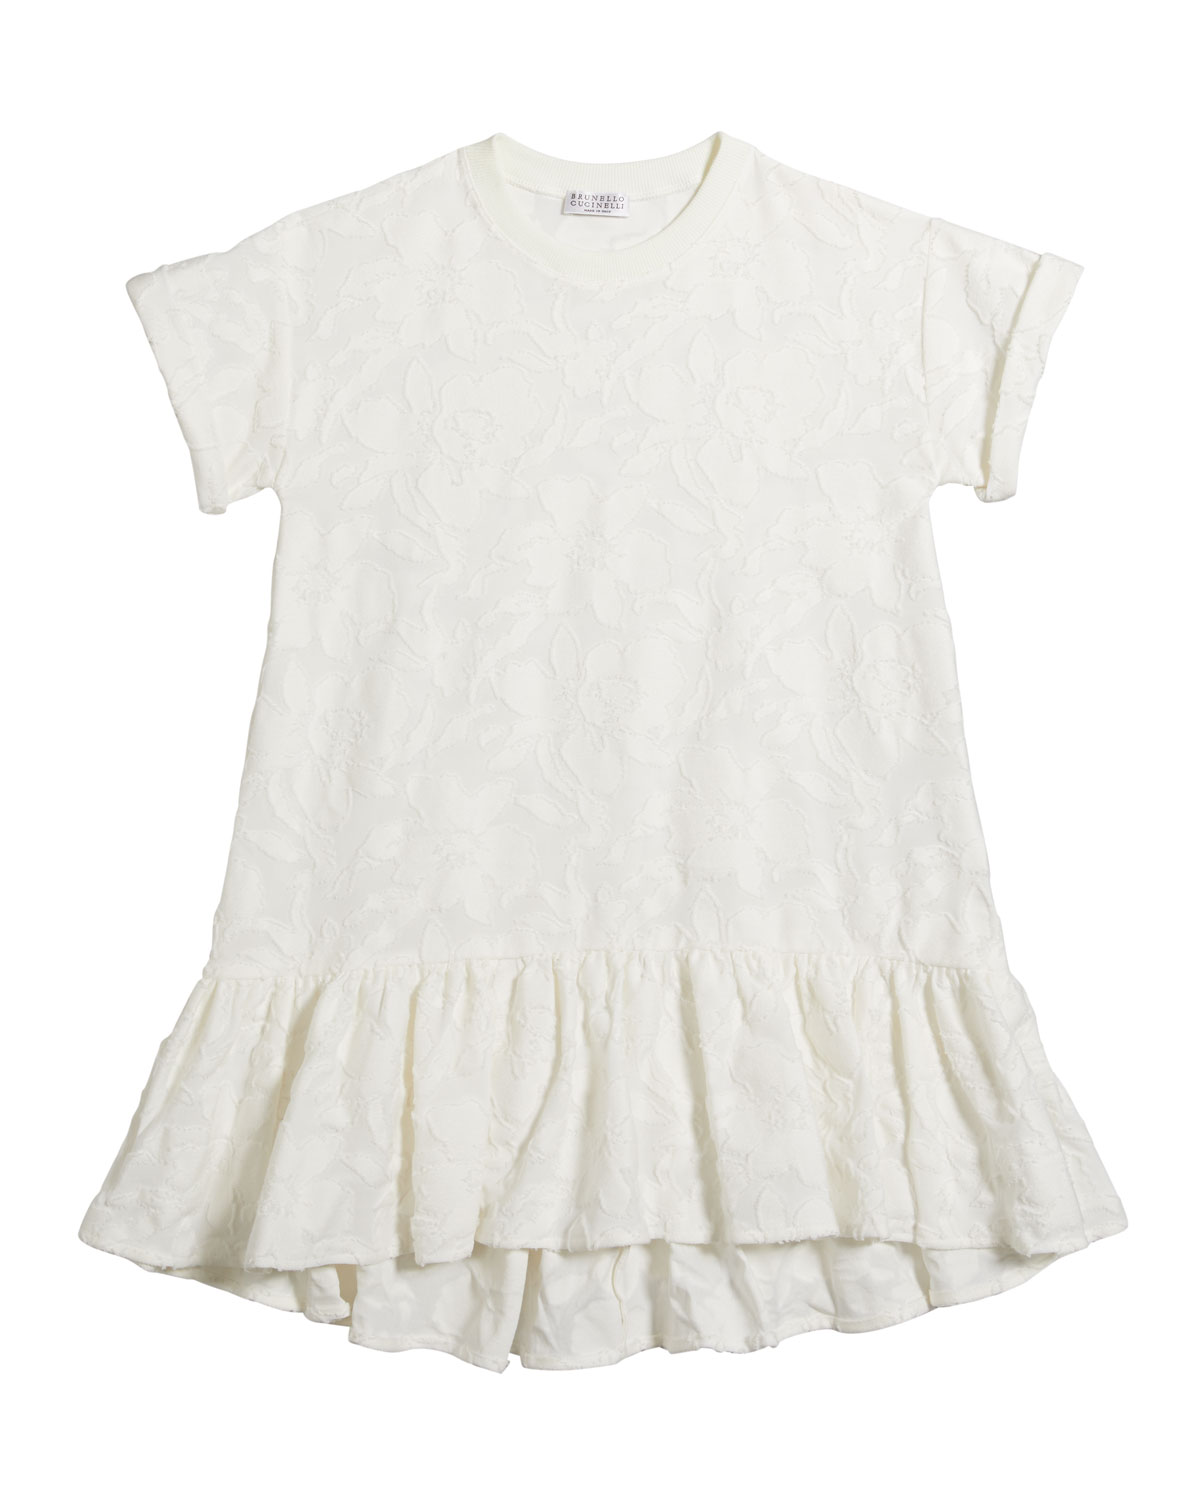 Brunello Cucinelli Girl's Short-Sleeve Jacquard Dress, Size 4-6